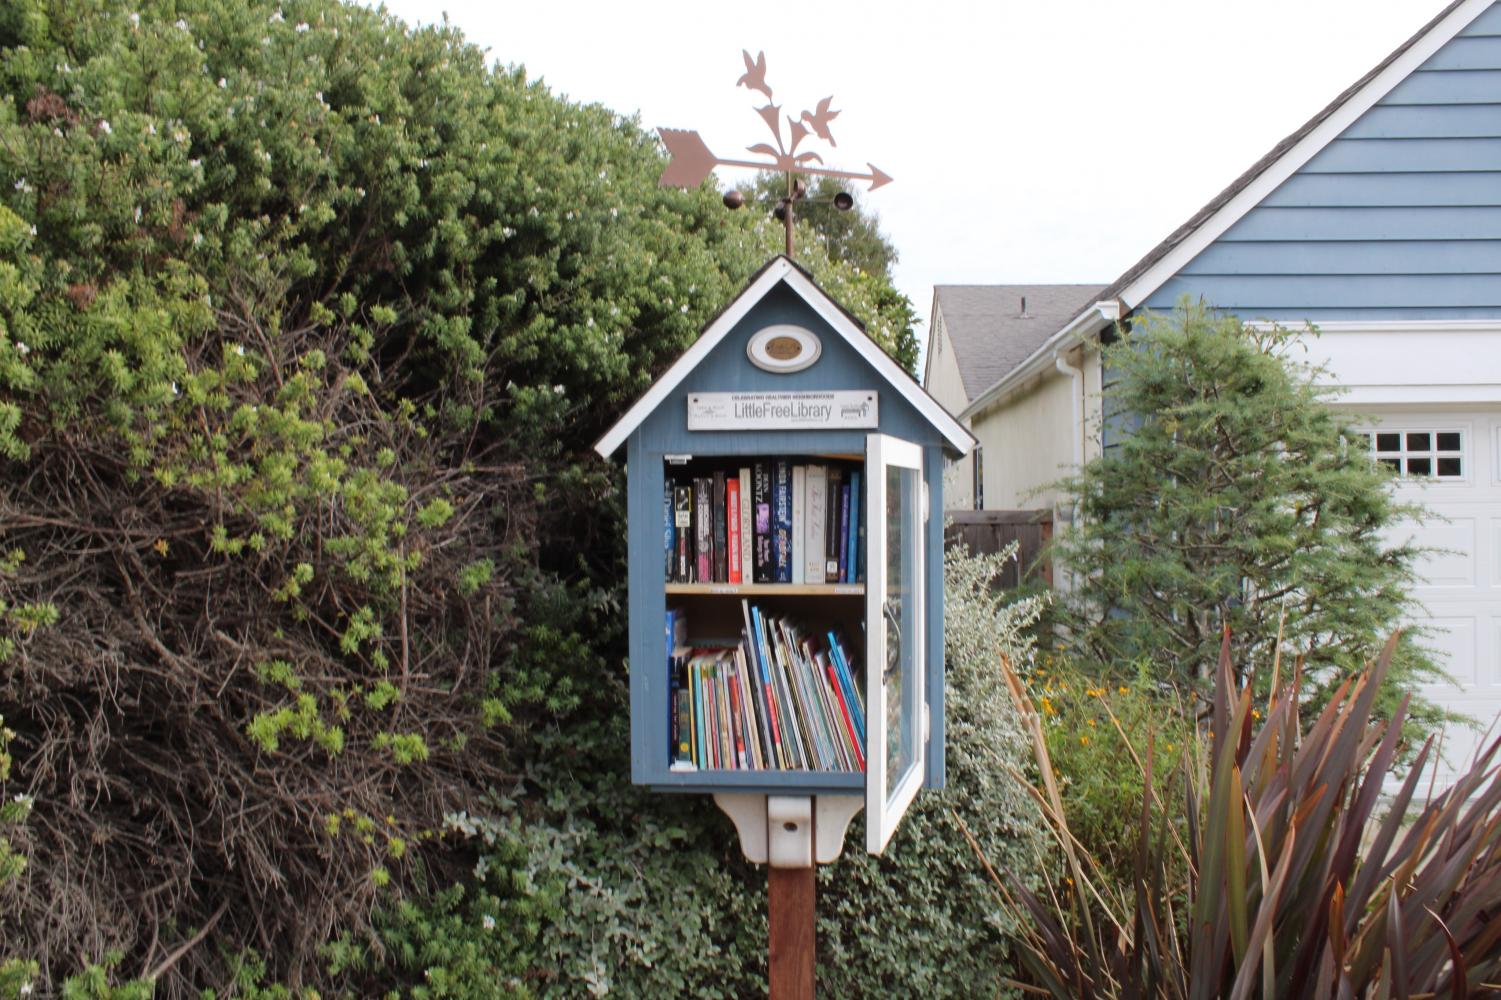 """Joanne Martinez's book exchange location stands in front of the house it was modeled after. The successful impact of Martinez's Little Free Library allowed her to help other book exchanges in the community. """"We have an excess number of books,"""" Martinez said. """"We will oftentimes put them all in a box and go and drop them off at someone else's little library to share."""""""